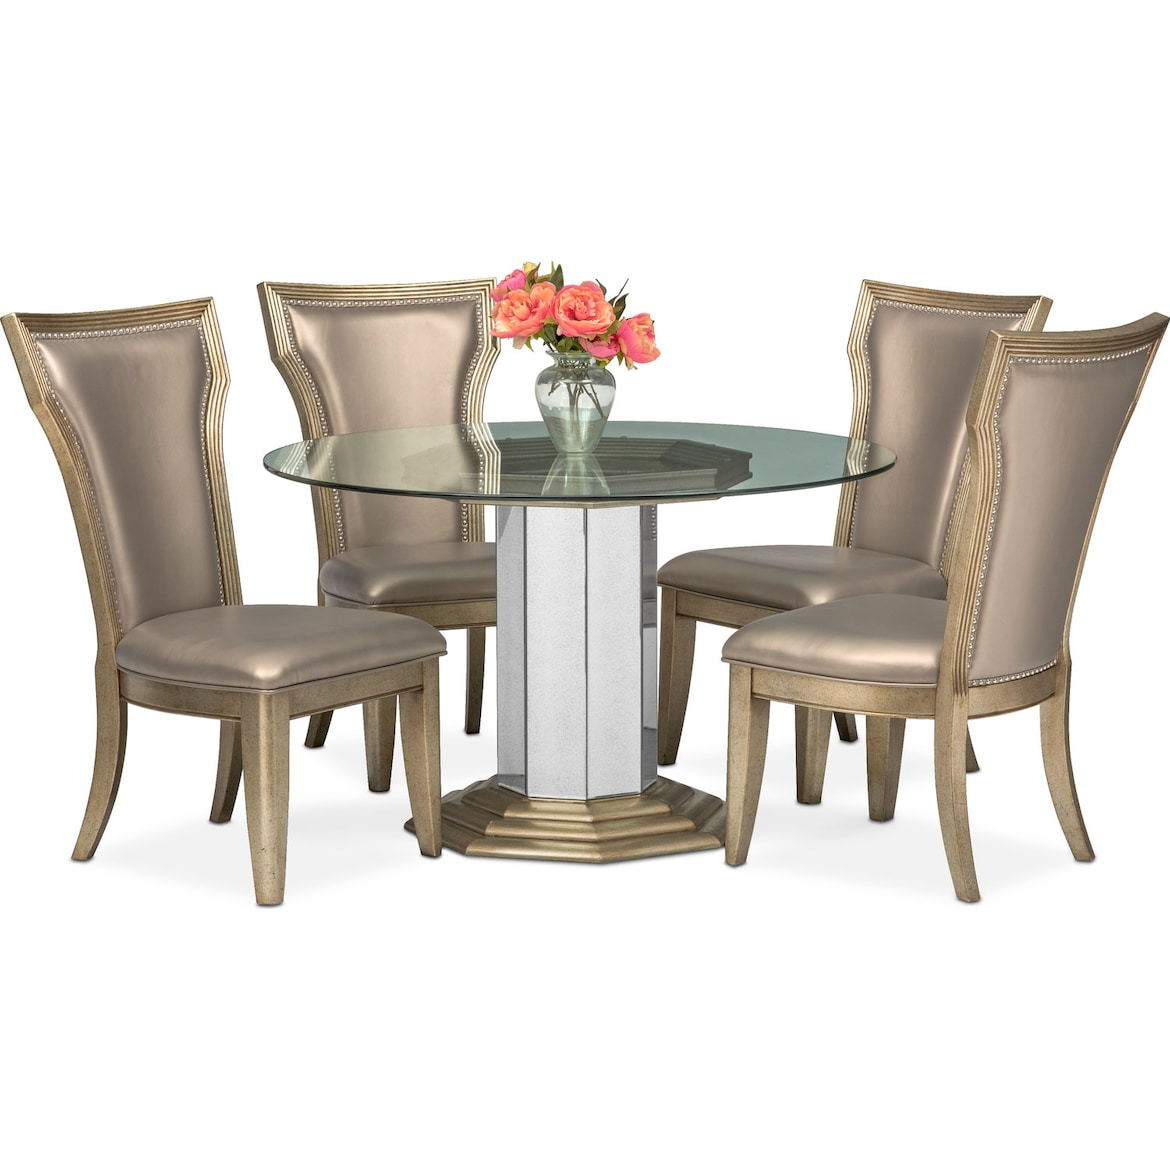 00347895cb0b Angelina Round Table and 4 Side Chairs - Metallic | American ...